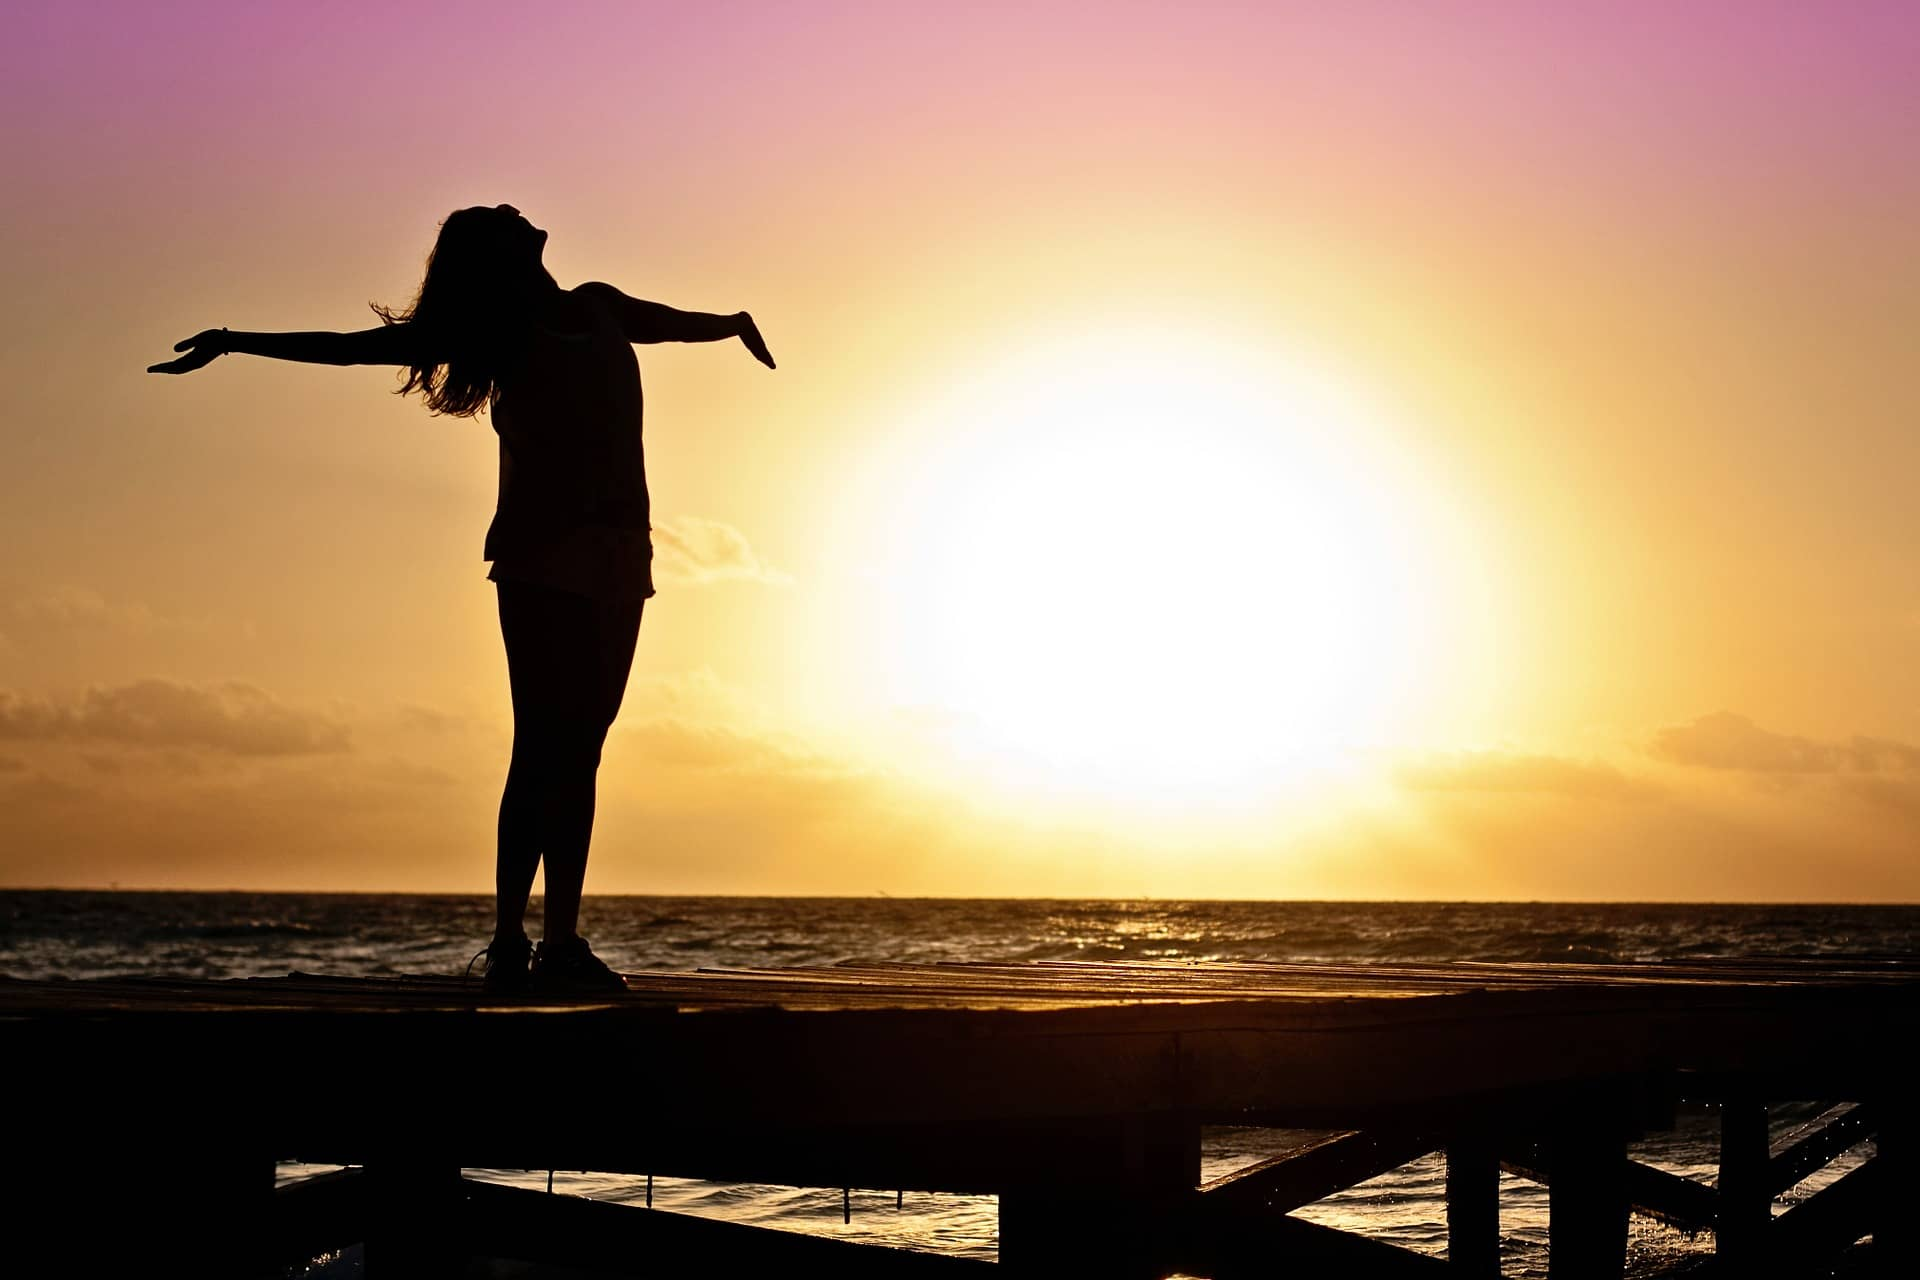 woman standing on jetty facing sun with arms outstretched